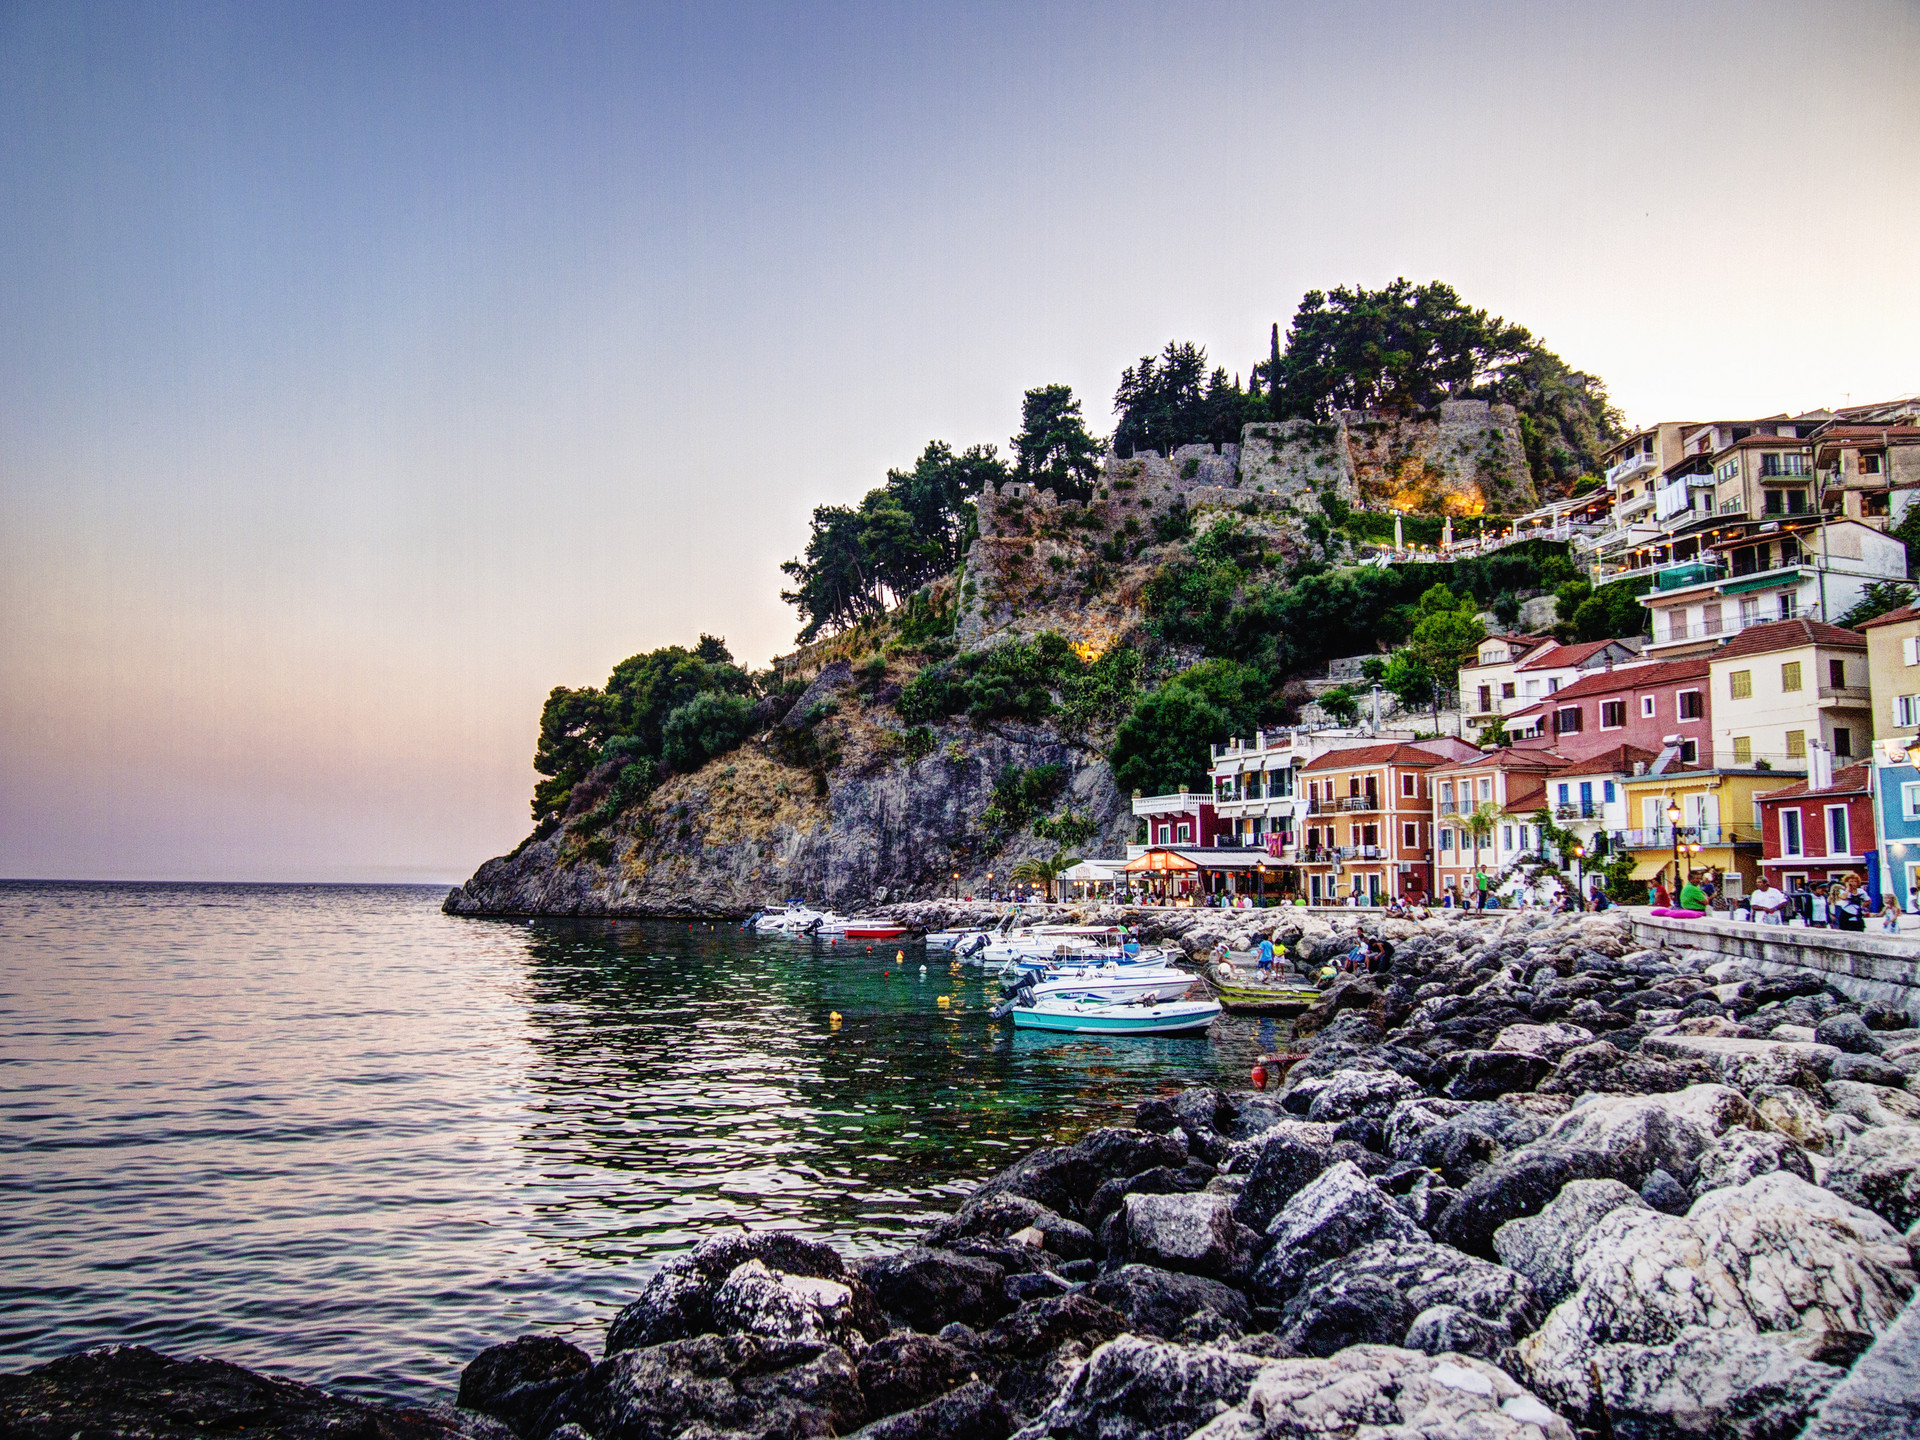 Gallery Preveza Parga photo #188